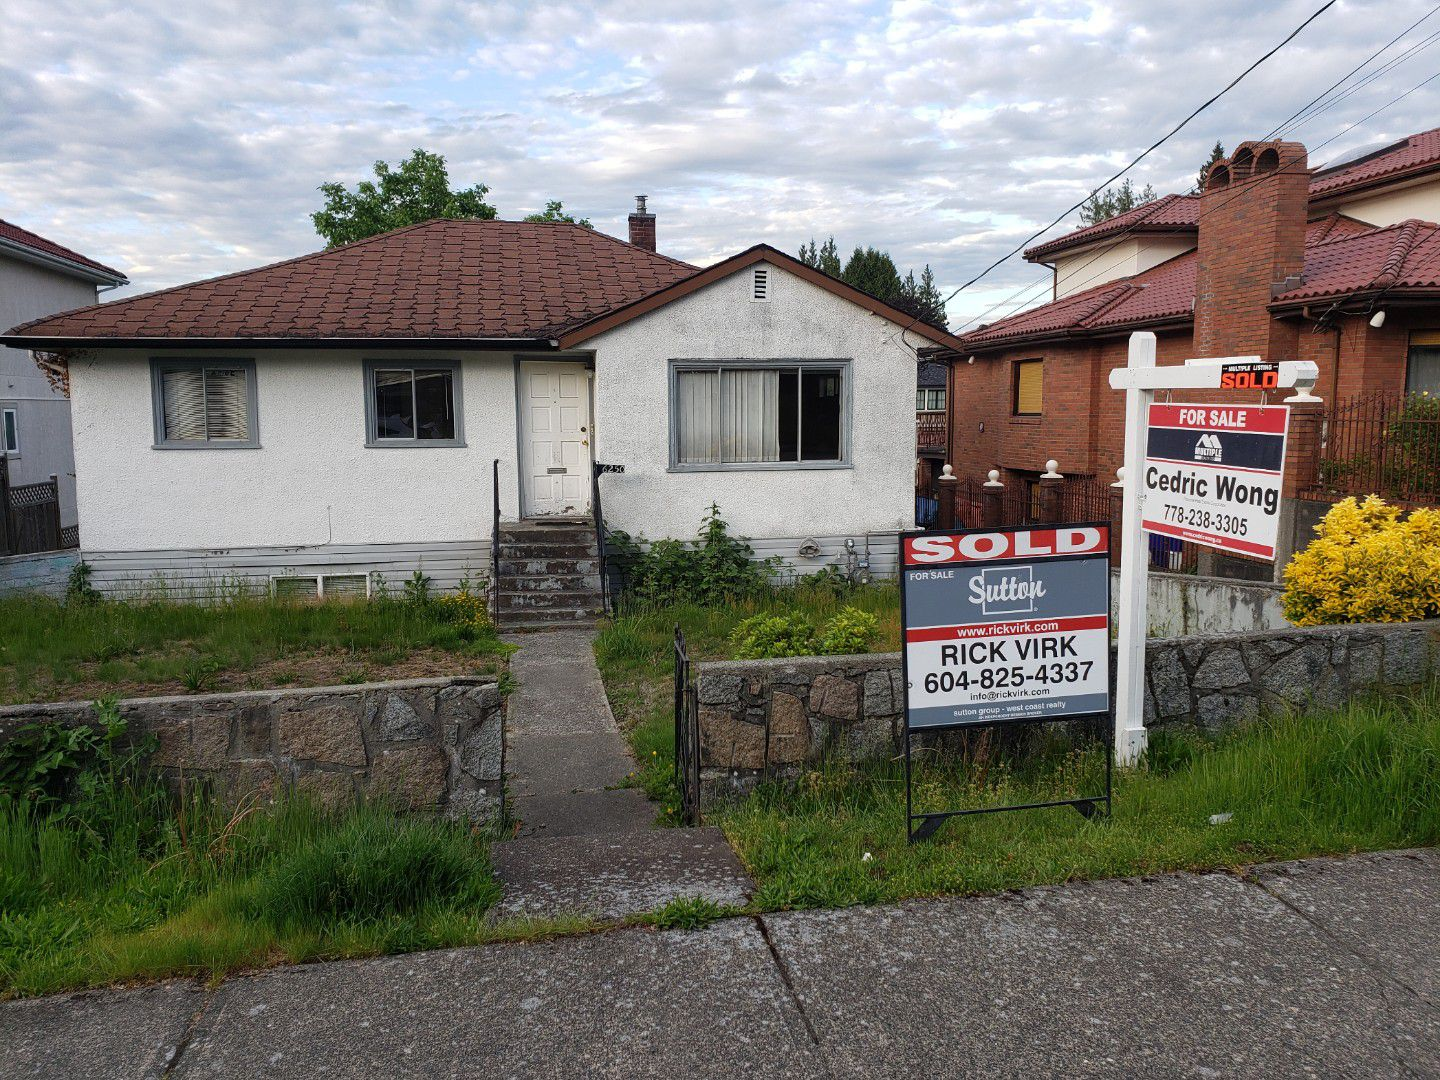 Main Photo: 6250 LEIBLY Avenue in BURNABY: Upper Deer Lake House for sale (Burnaby South)  : MLS®# R2278774